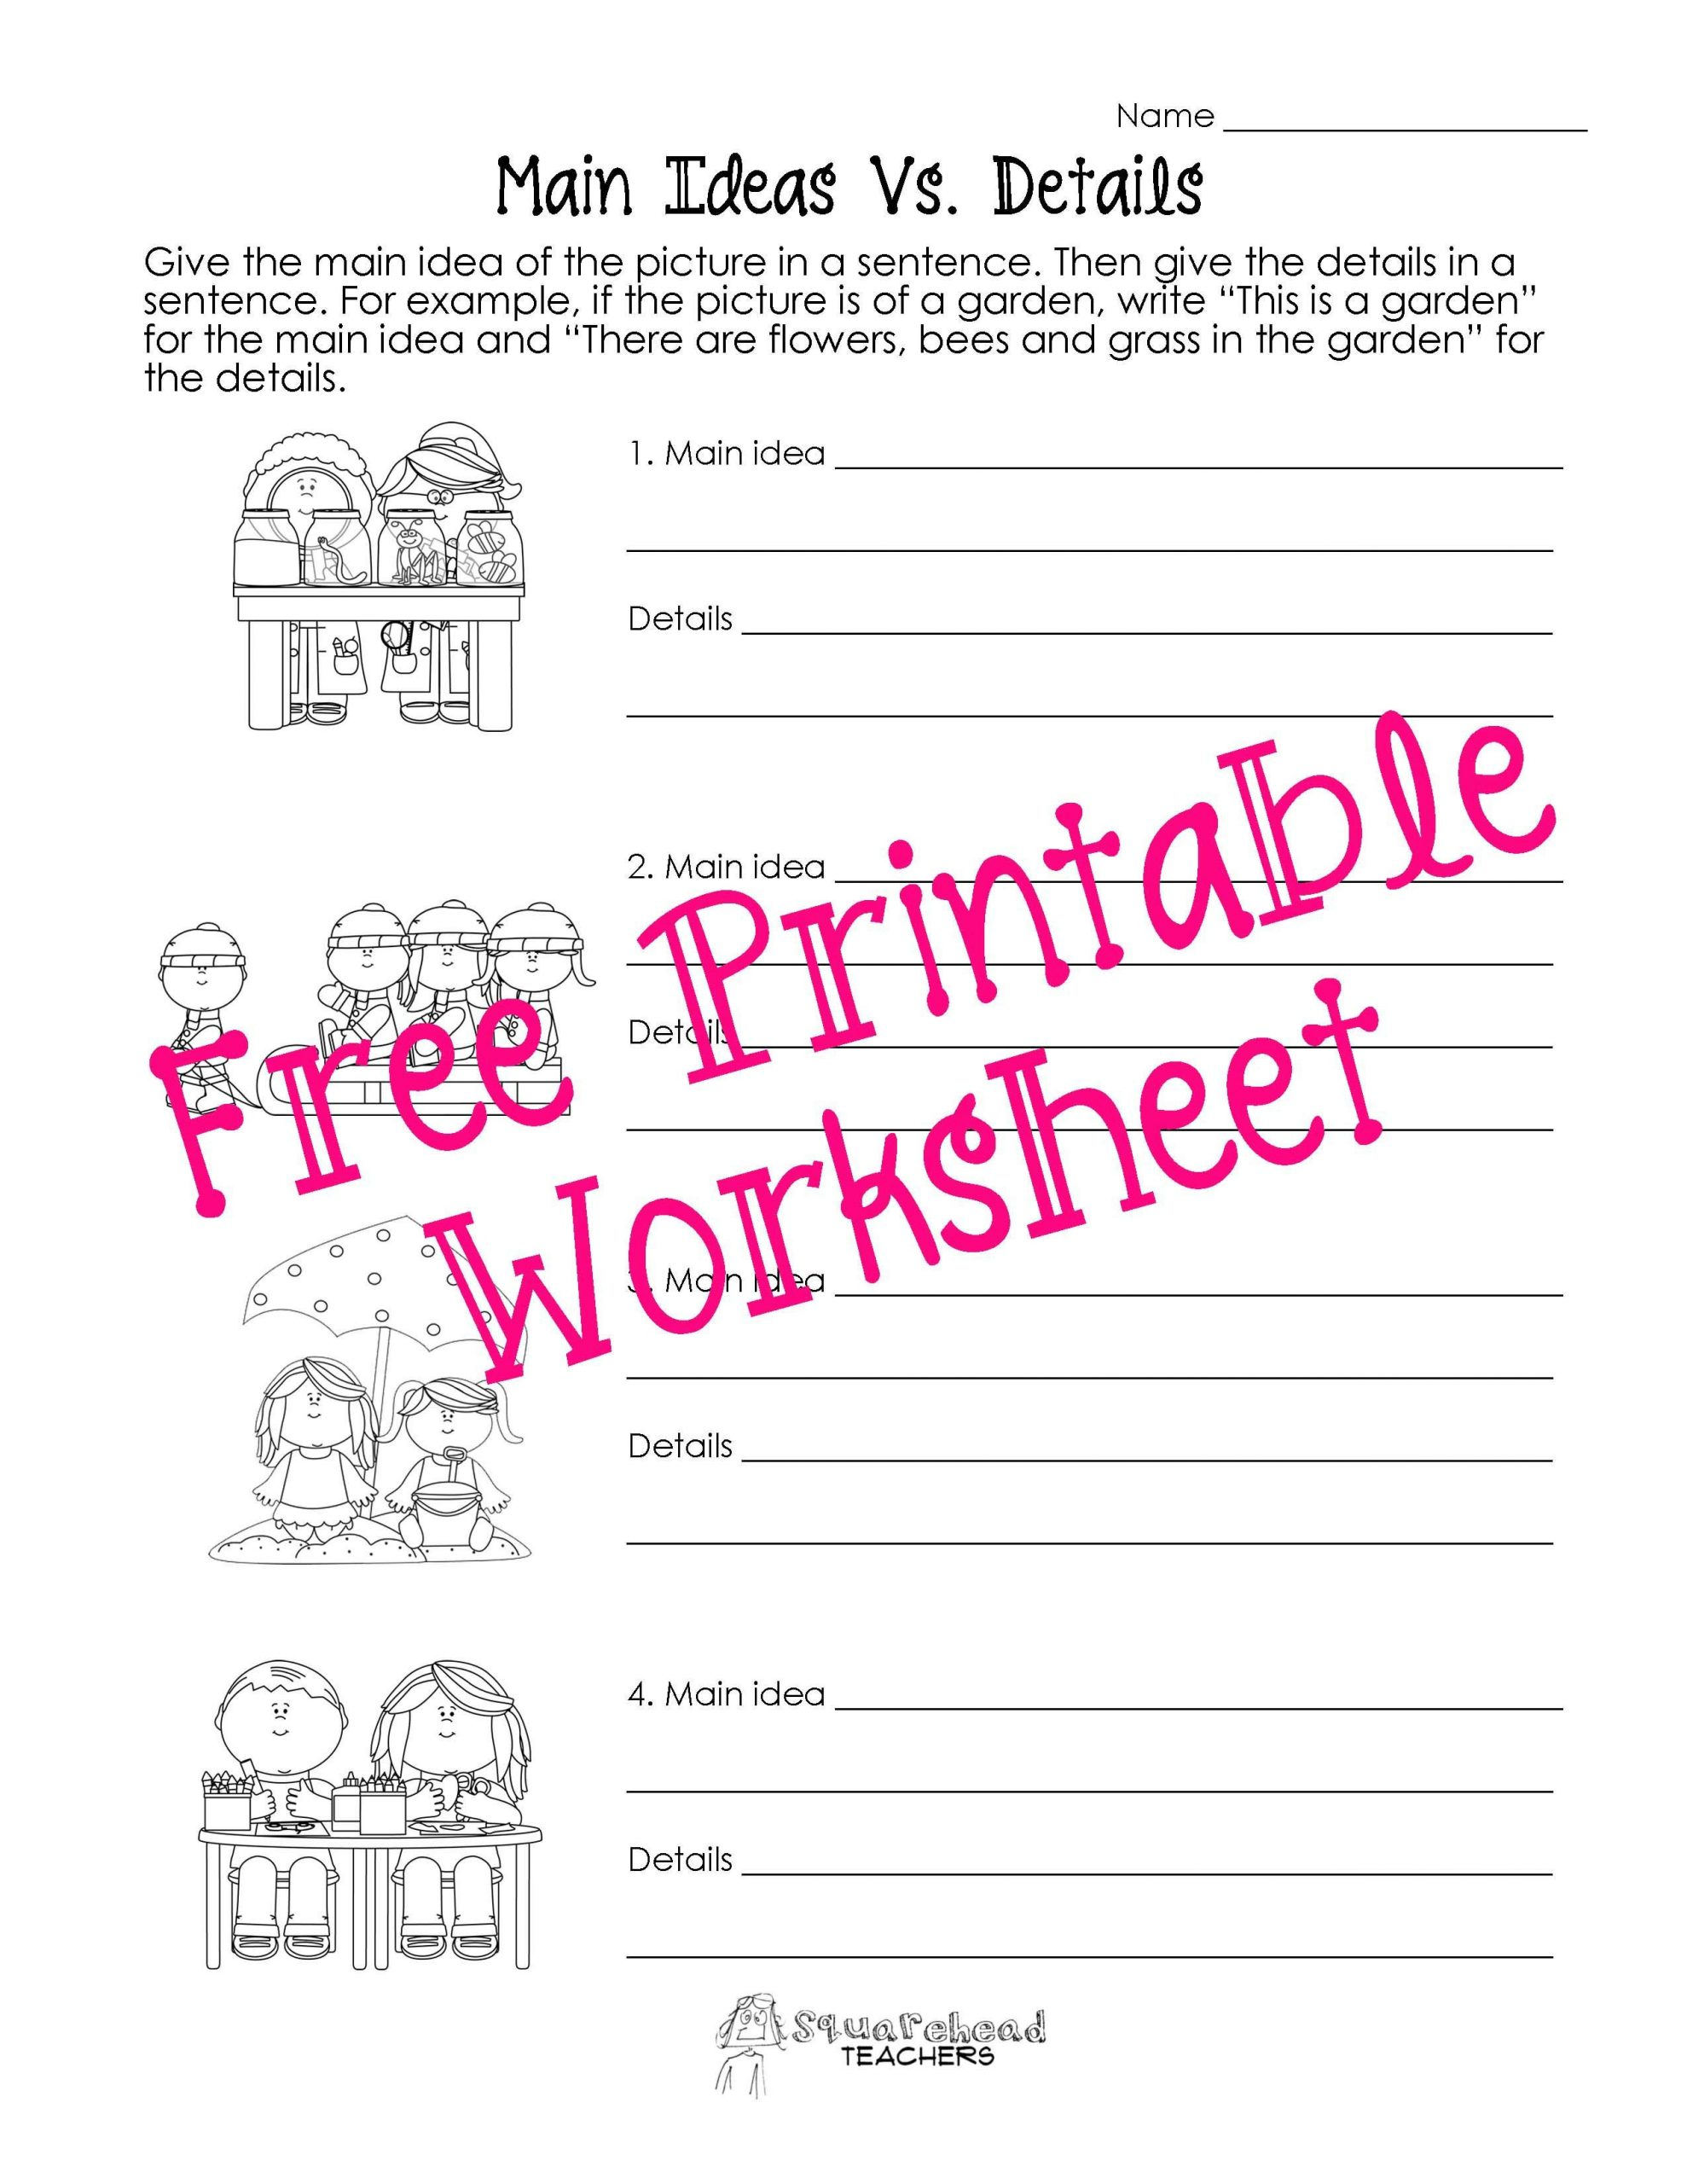 Free Printable Main Idea Worksheets Main Idea Vs Details Worksheets